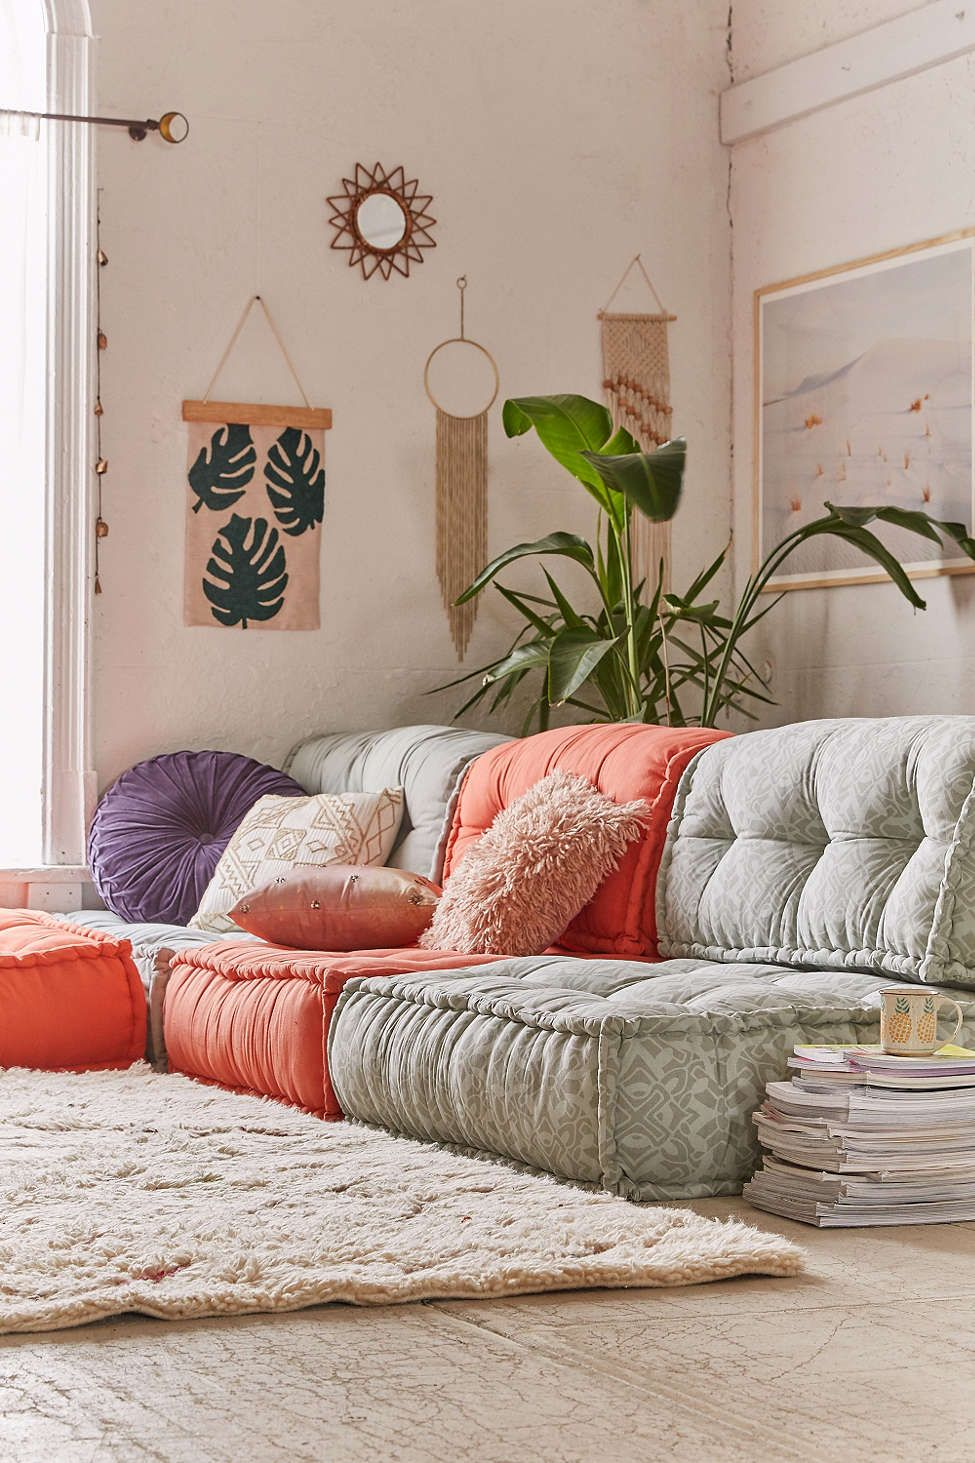 Boho Interior Design Floor Pillows 12 Creative And Unforgettable Sofa Designs You Will Love